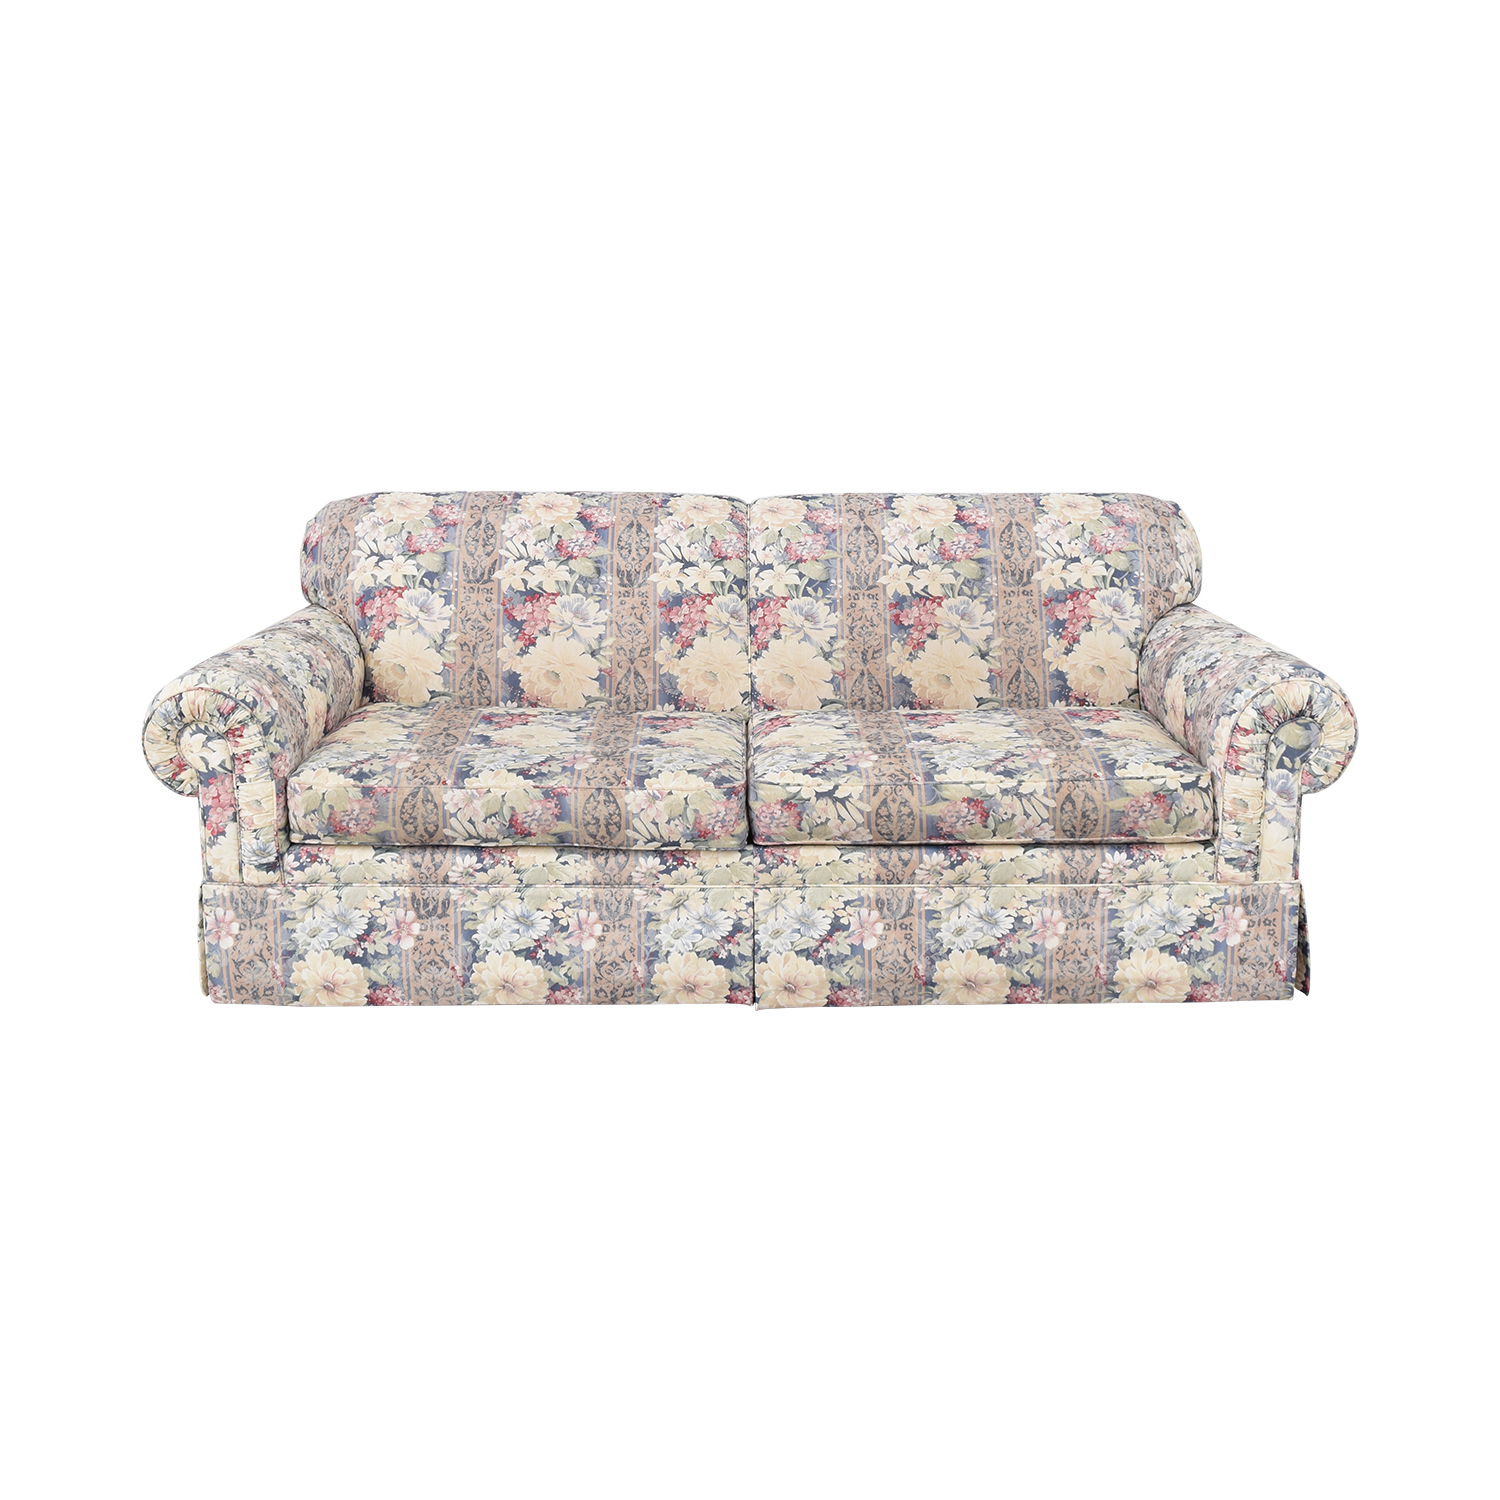 buy La-Z-Boy Two Cushion Sofa La-Z-Boy Sofas